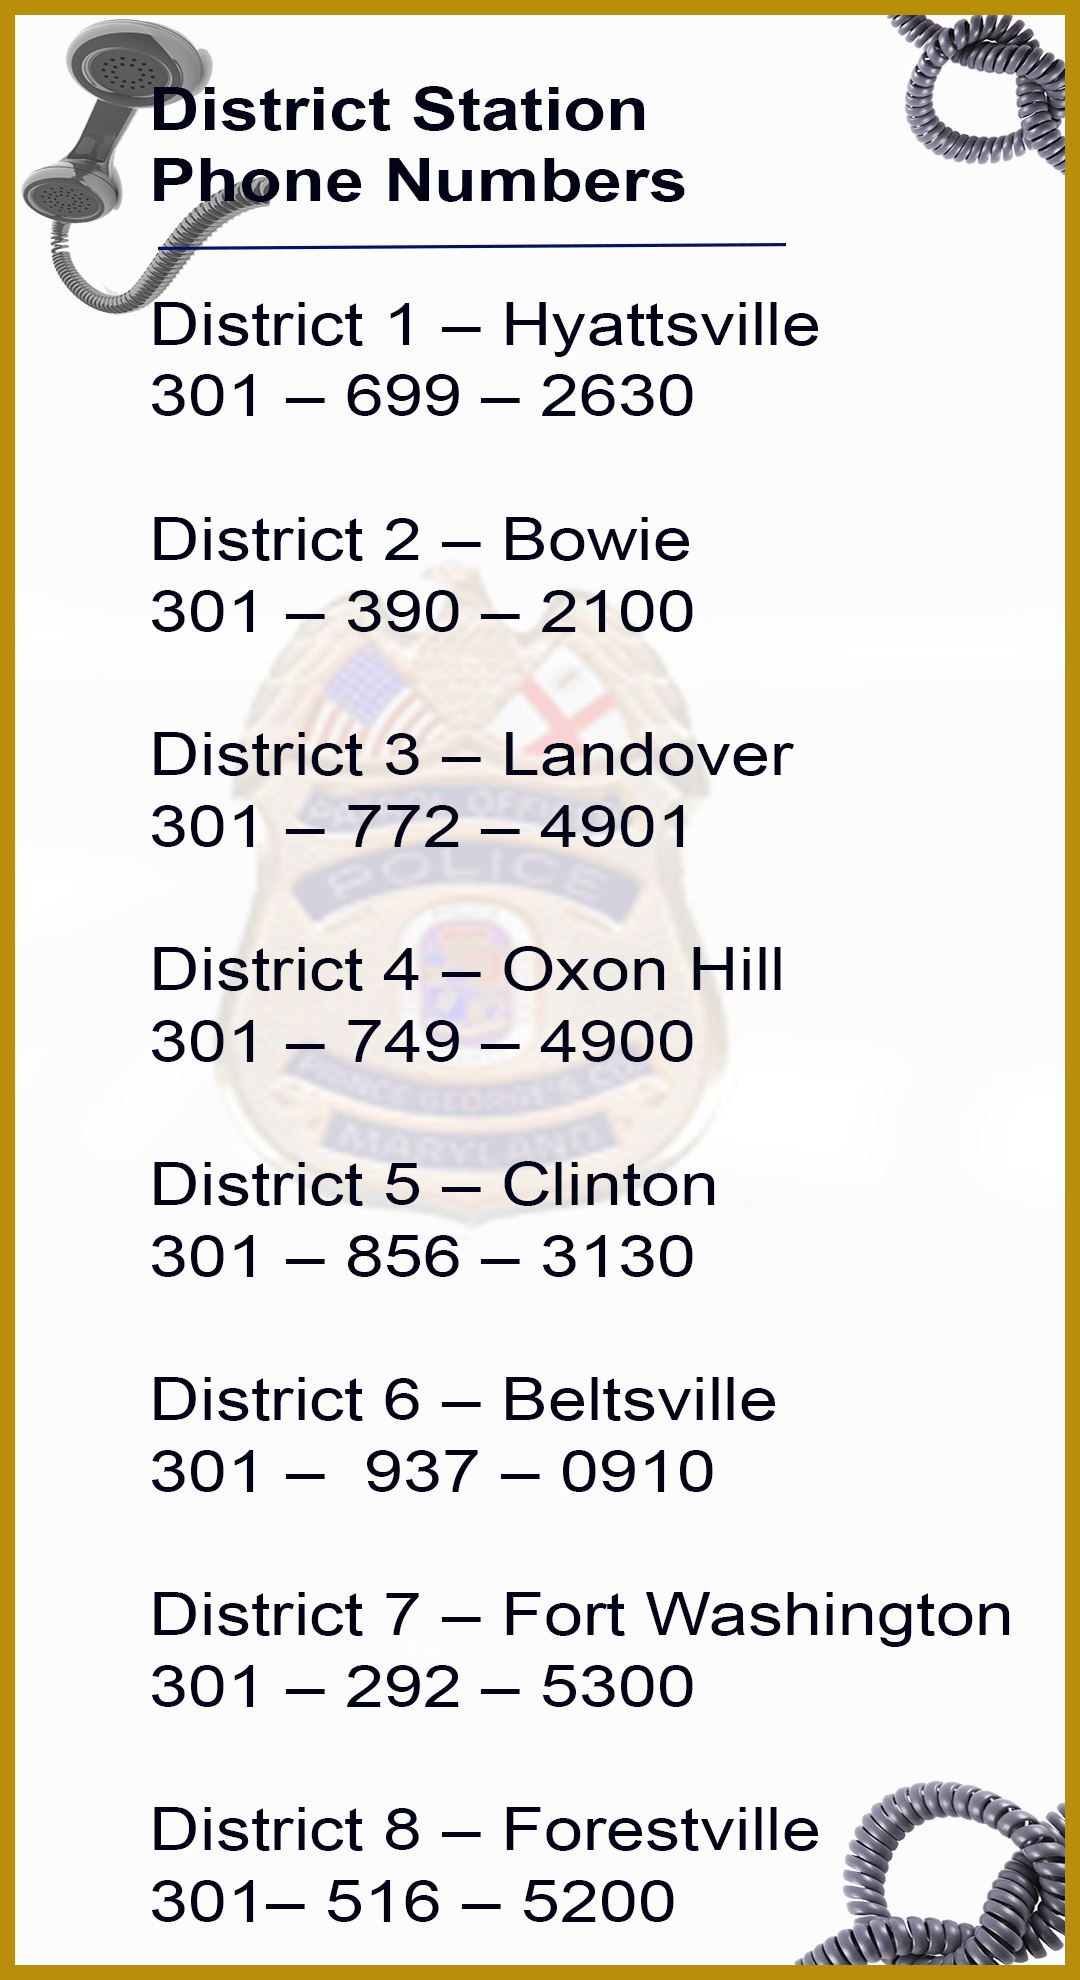 The District Stations and Phone Numbers